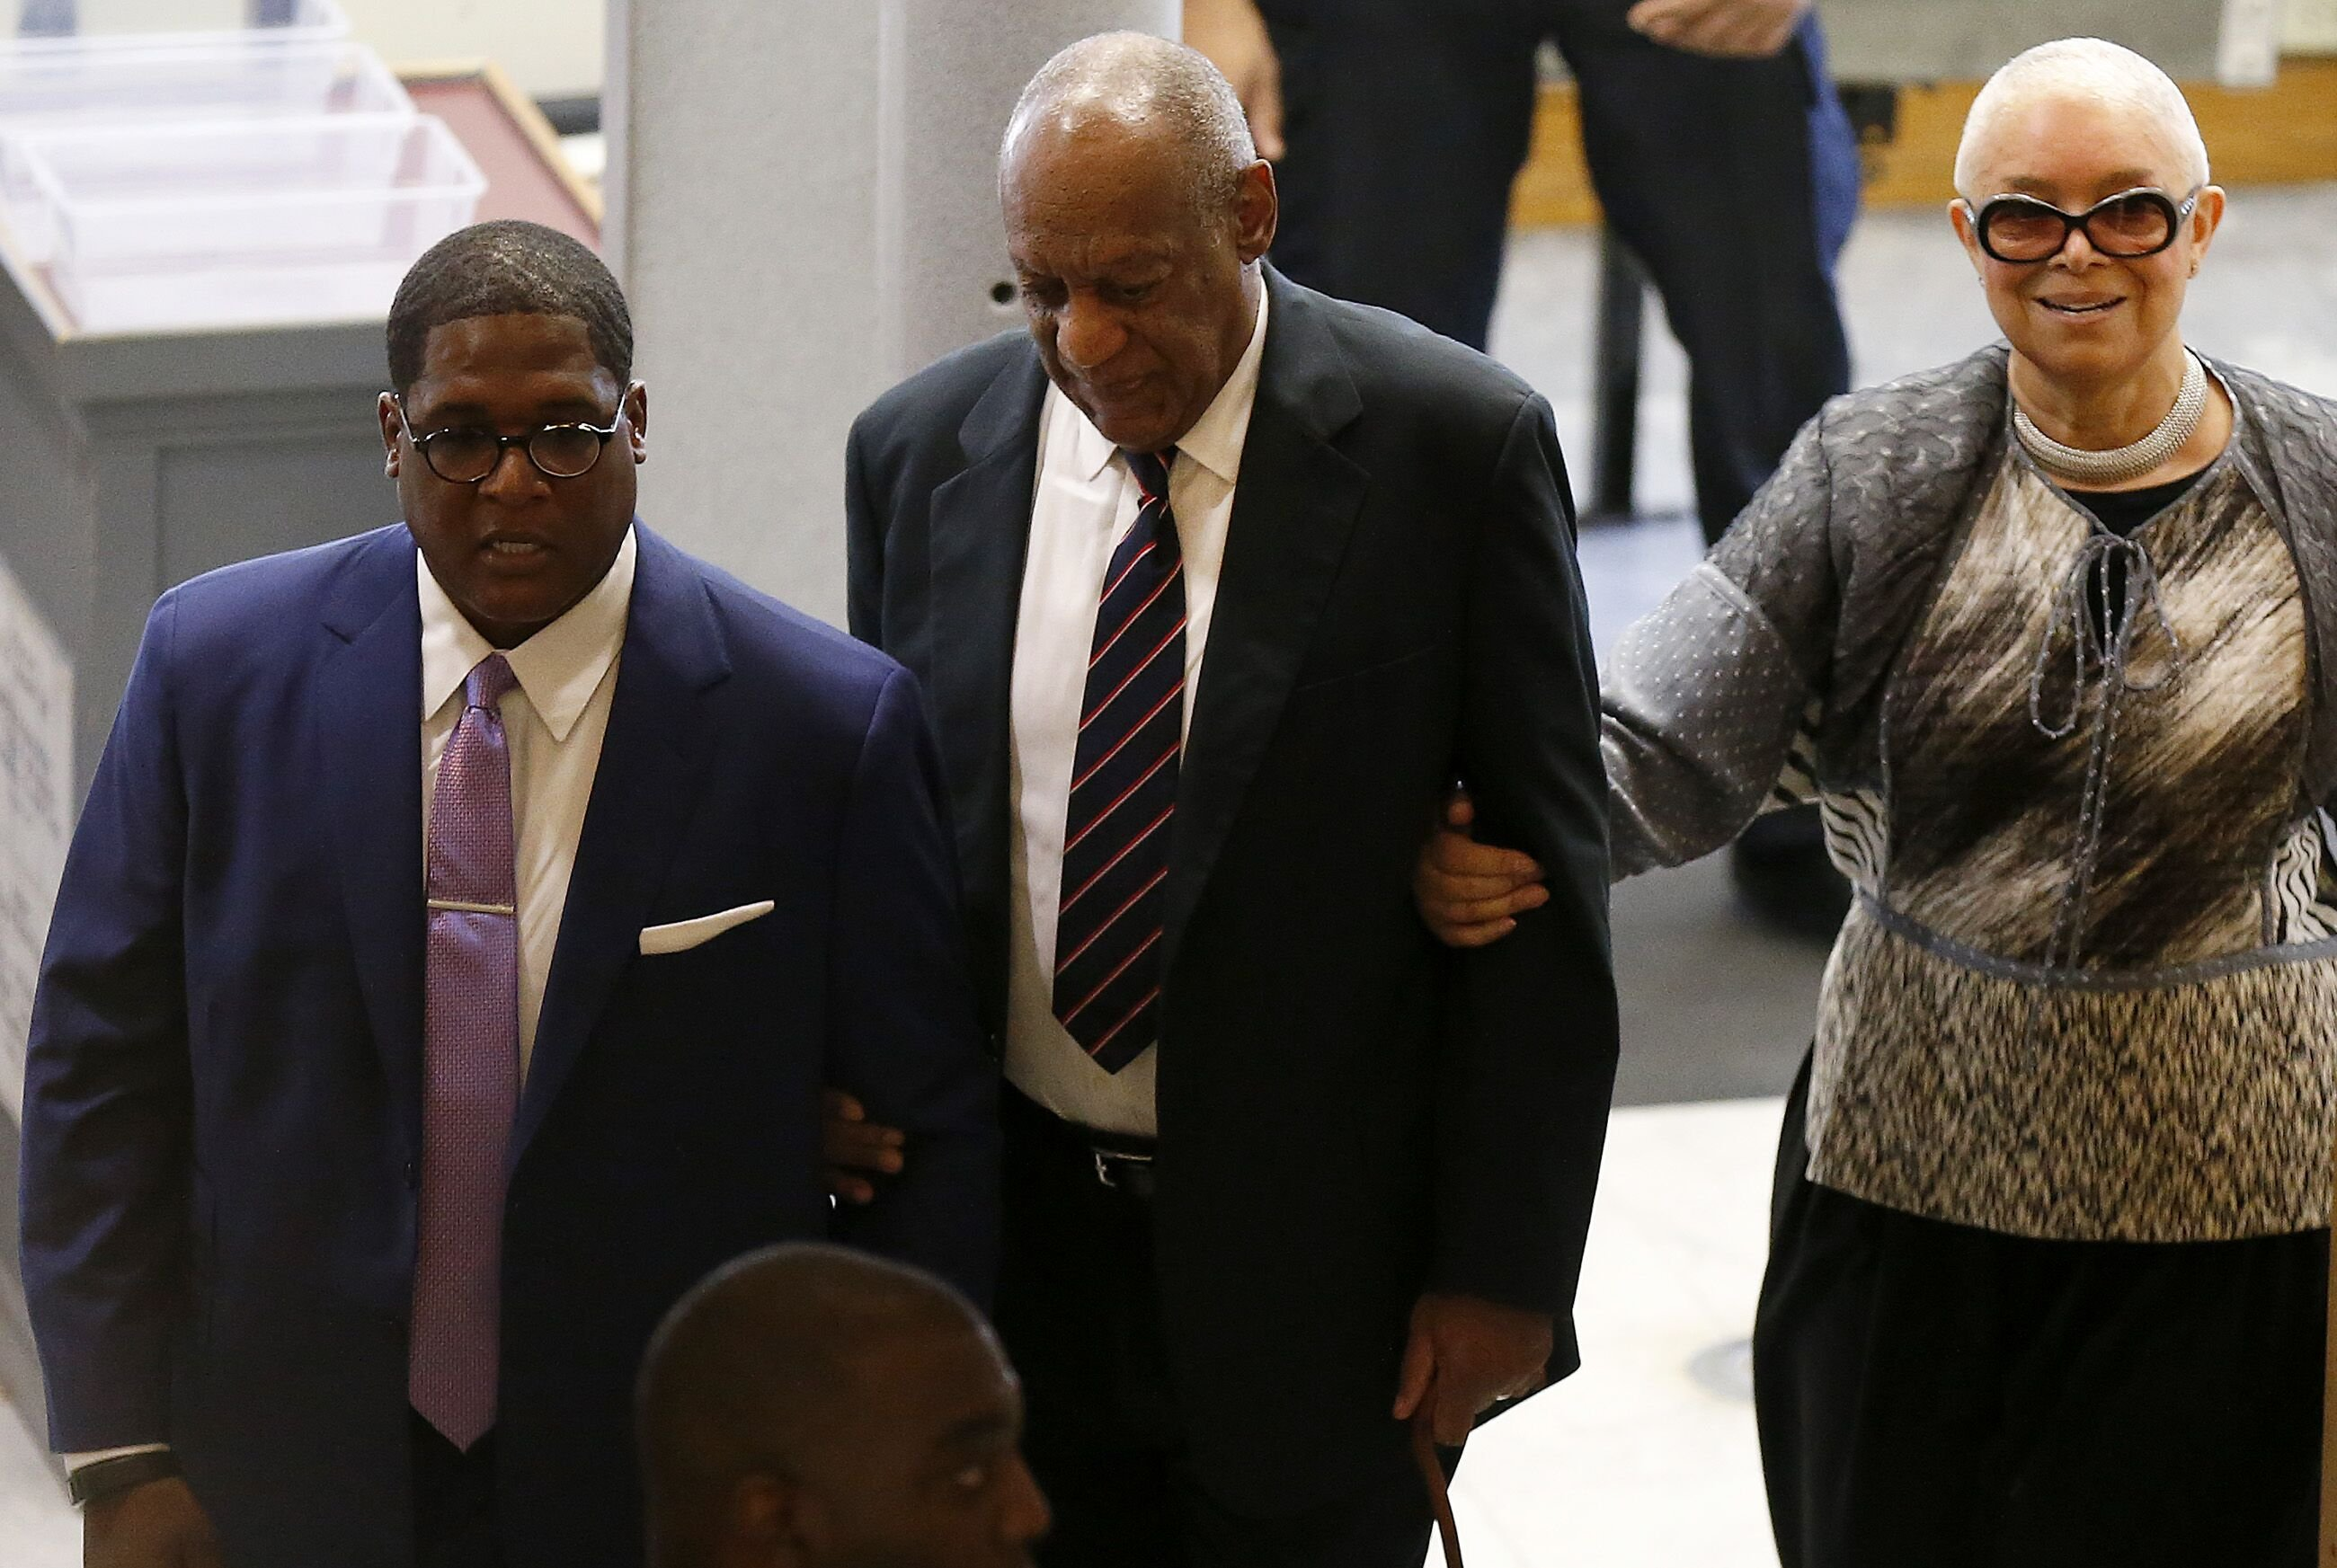 Bill and Camille Cosby enter the Montgomery County Courthouse on June 12, 2017  | Photo: Getty Images